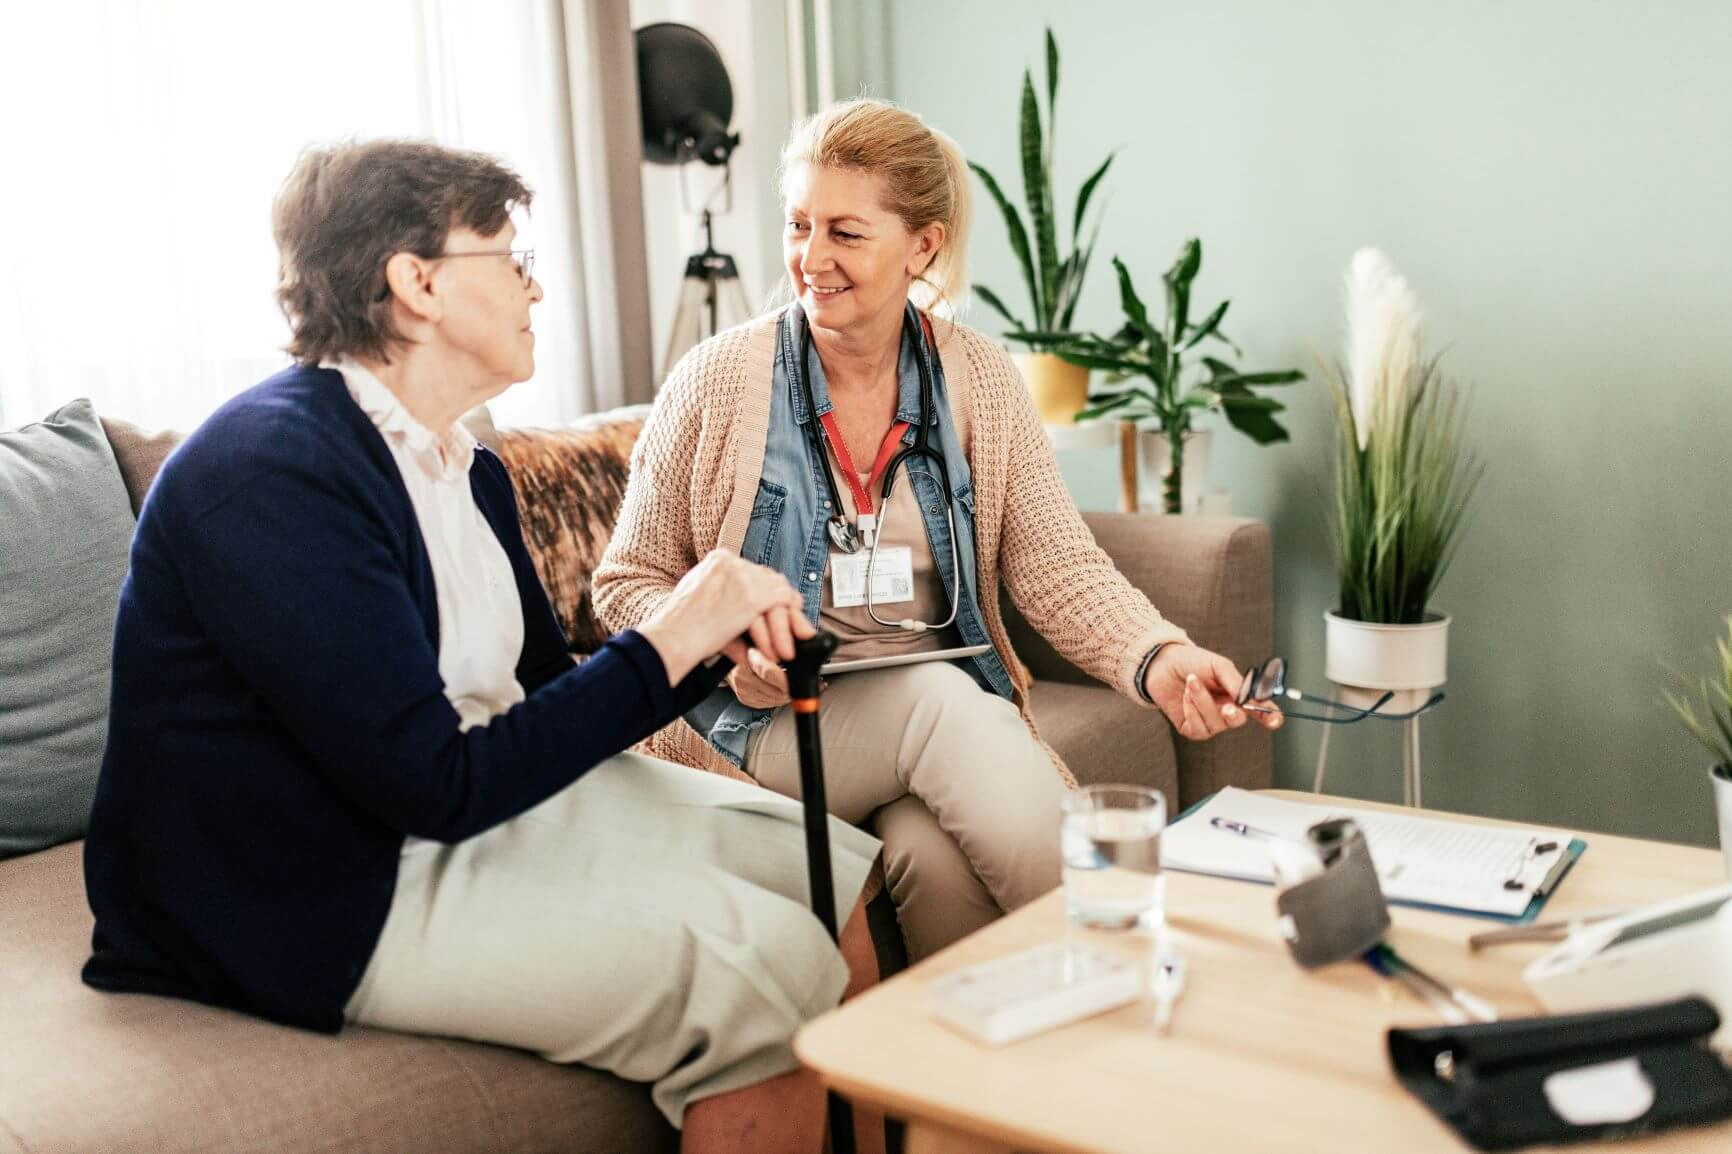 Aged Care Worker Meeting